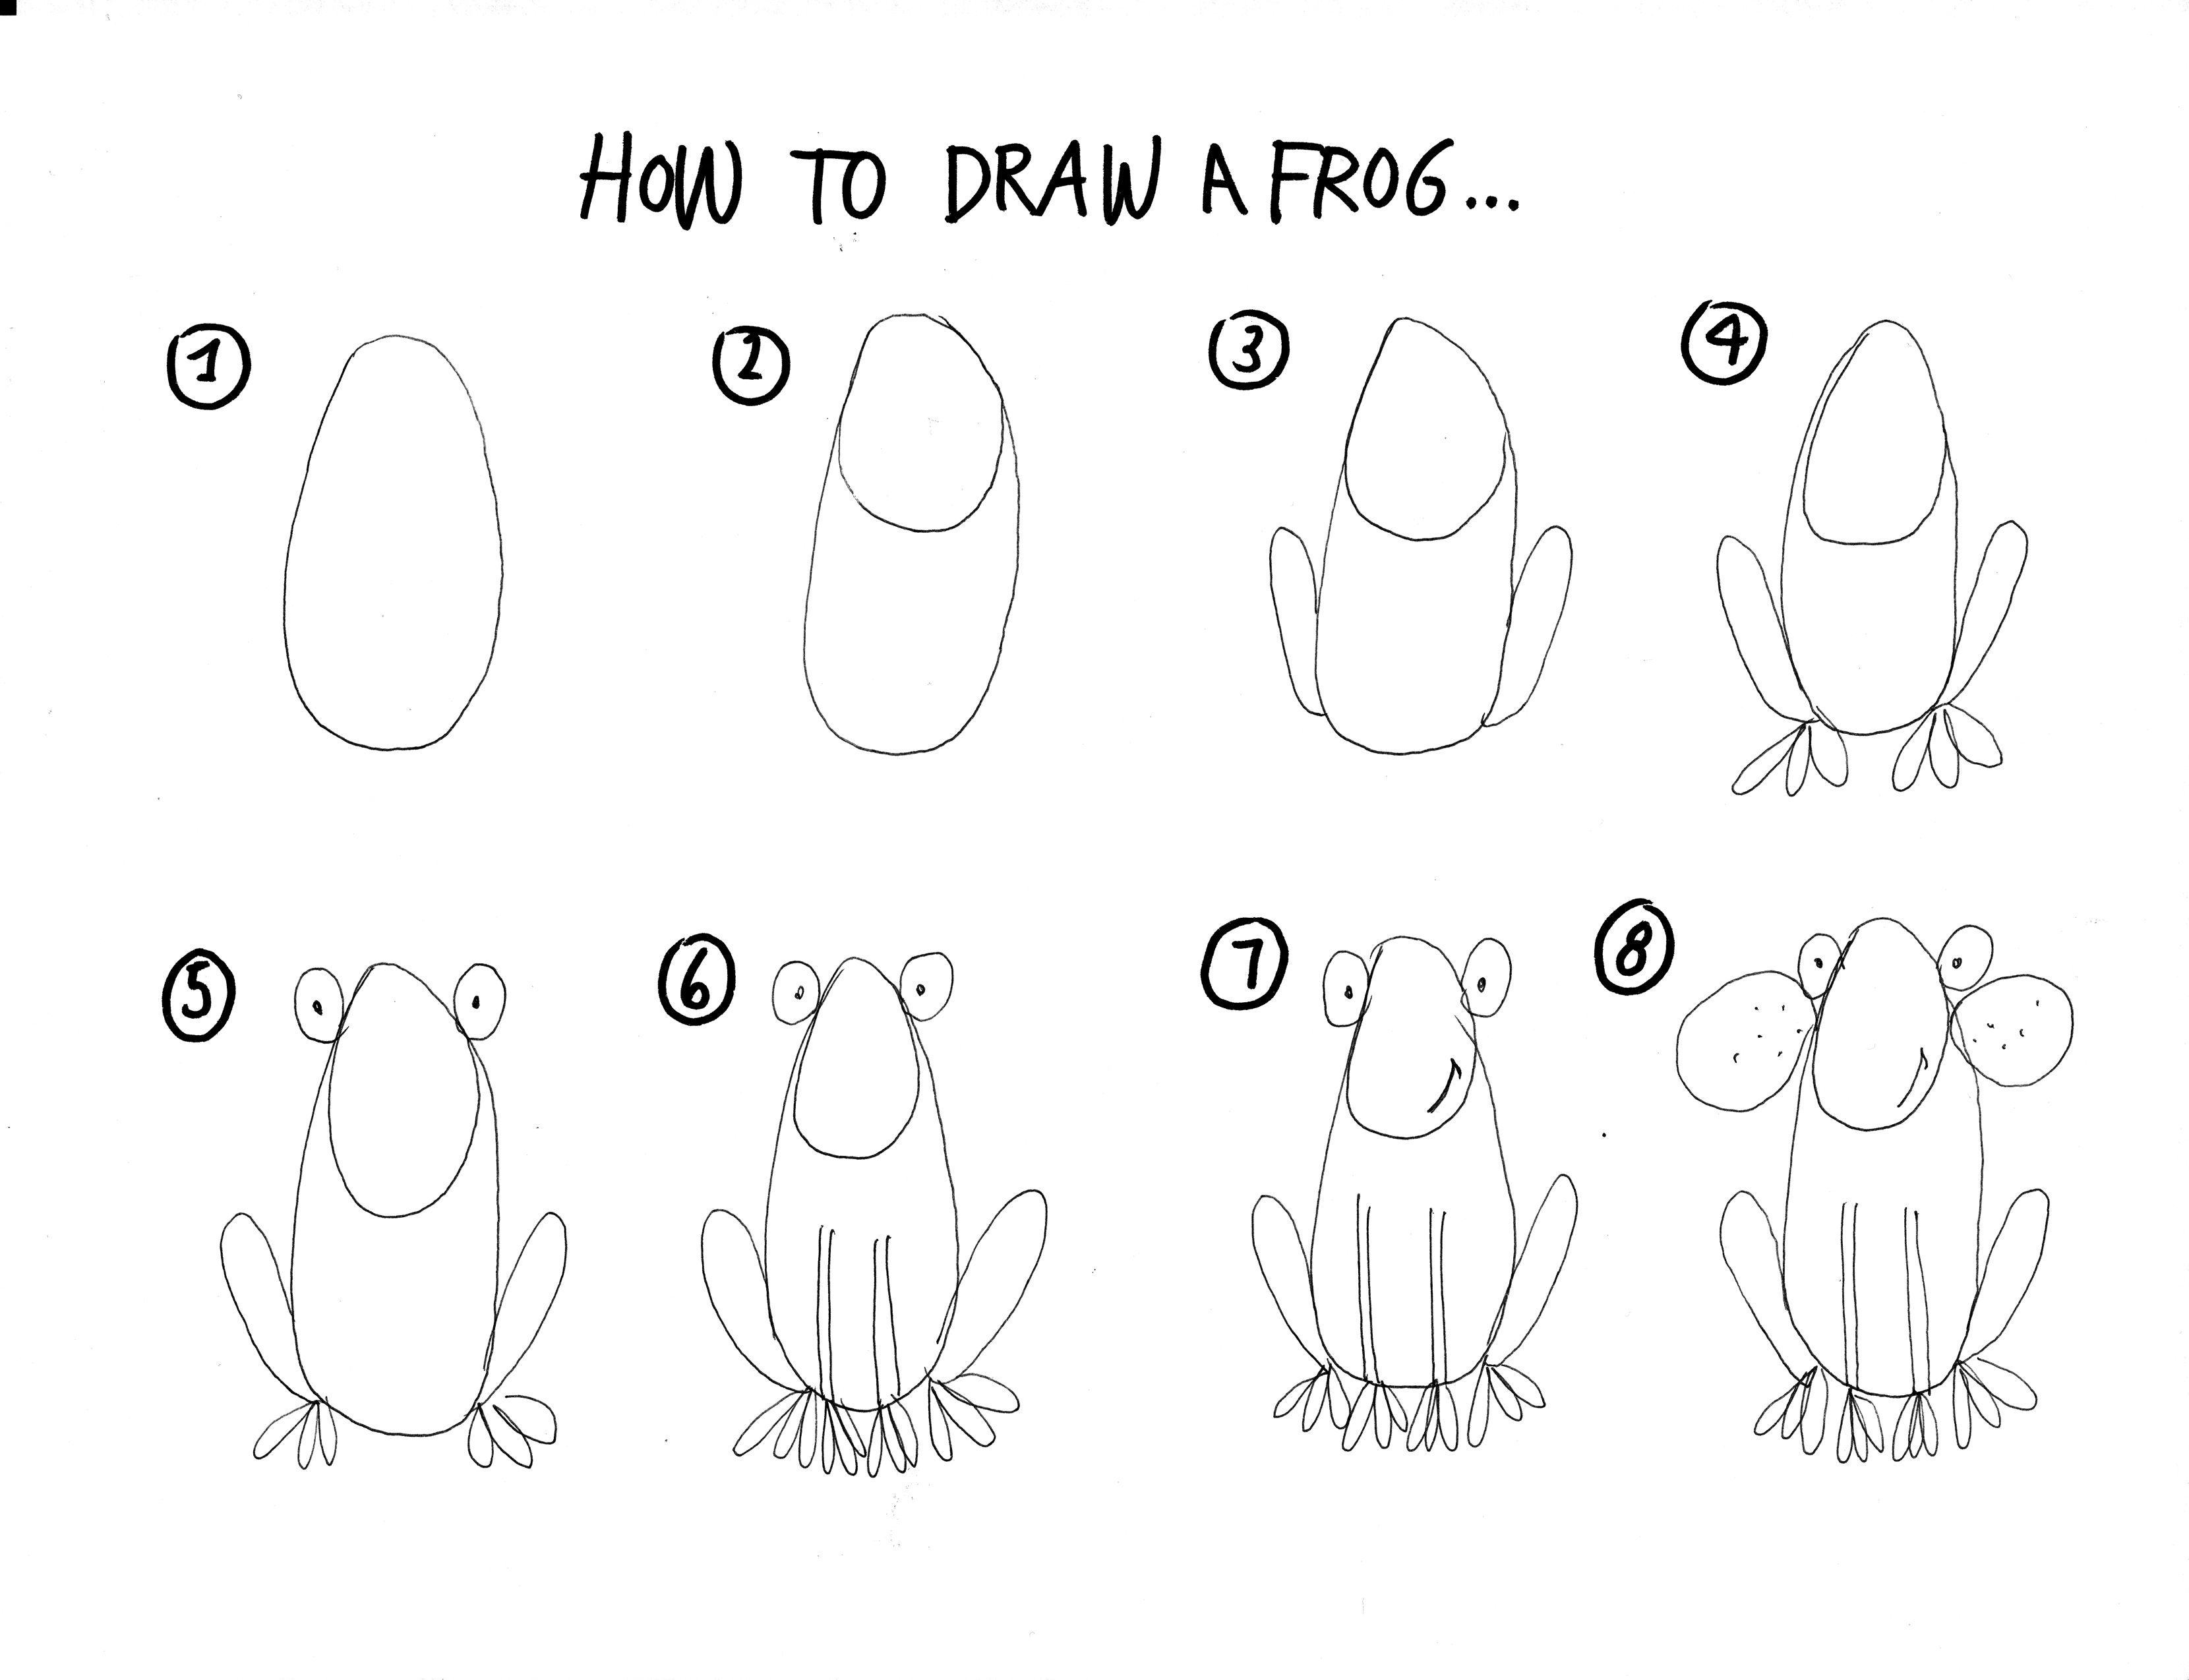 how to draw a frog easy draw a frog 1 by diana huang on deviantart frog art how draw a frog easy to